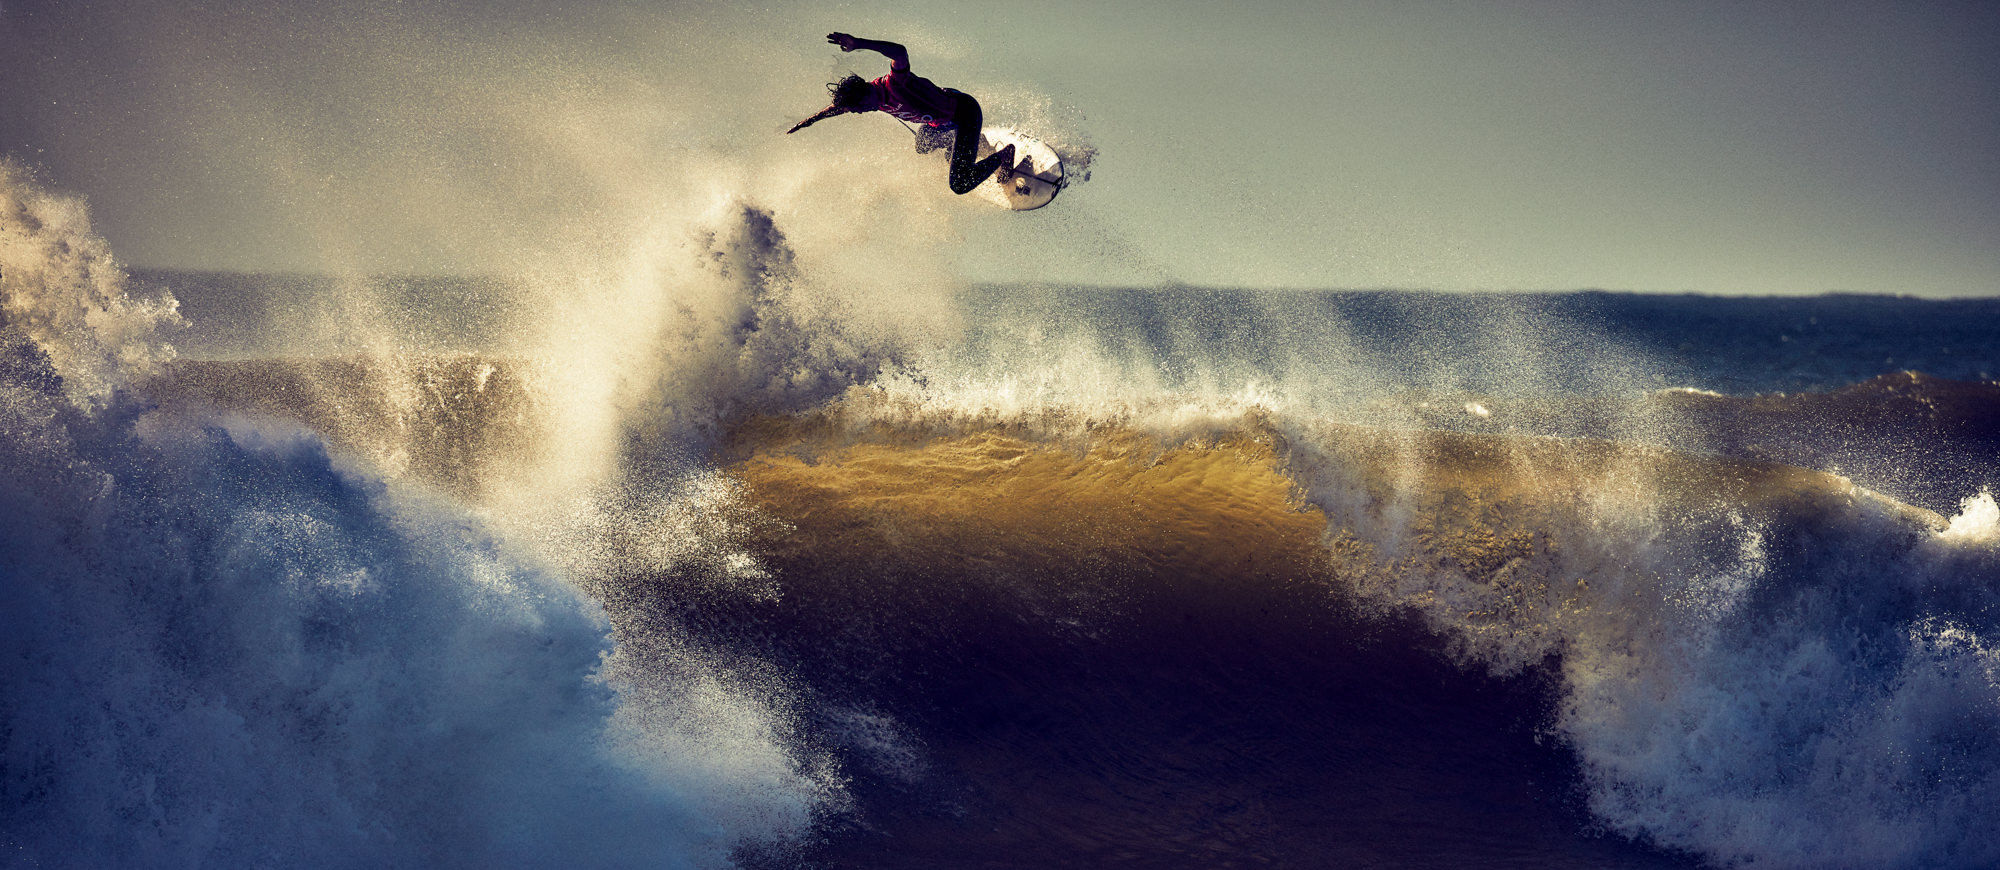 Dominik Mentzos shooting the World Surf League in Portugal, 2017